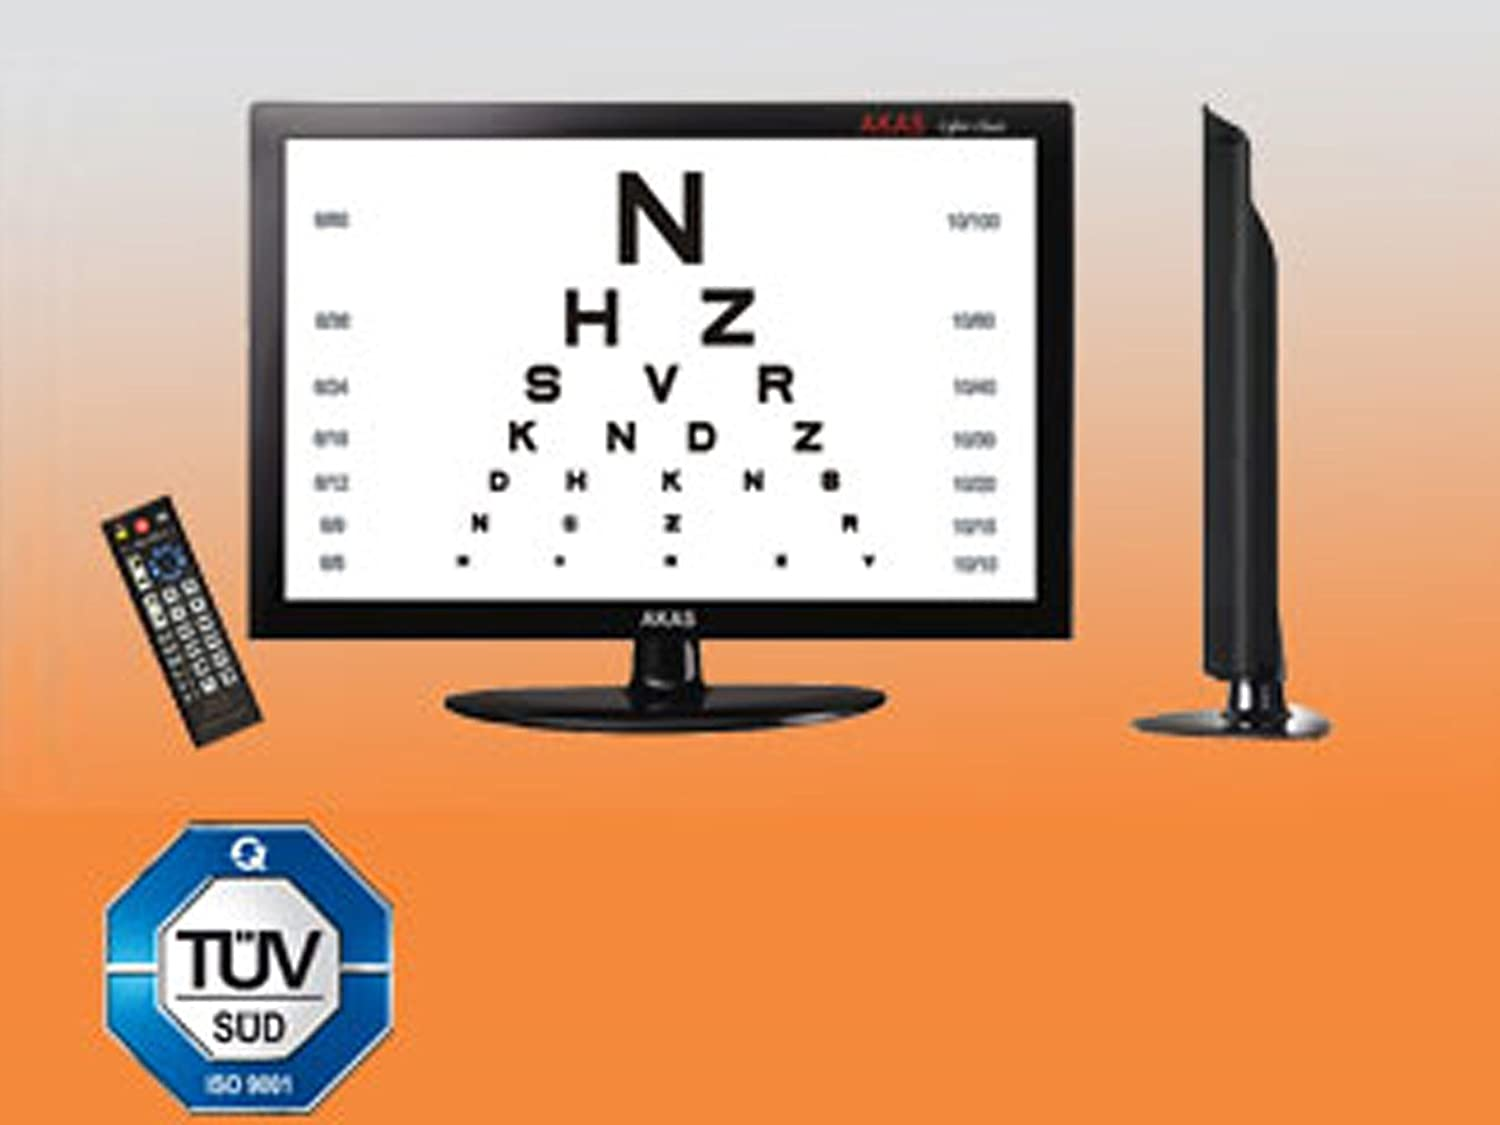 Buy snellen led visual acuity chart 185 online at low prices in buy snellen led visual acuity chart 185 online at low prices in india amazon nvjuhfo Gallery